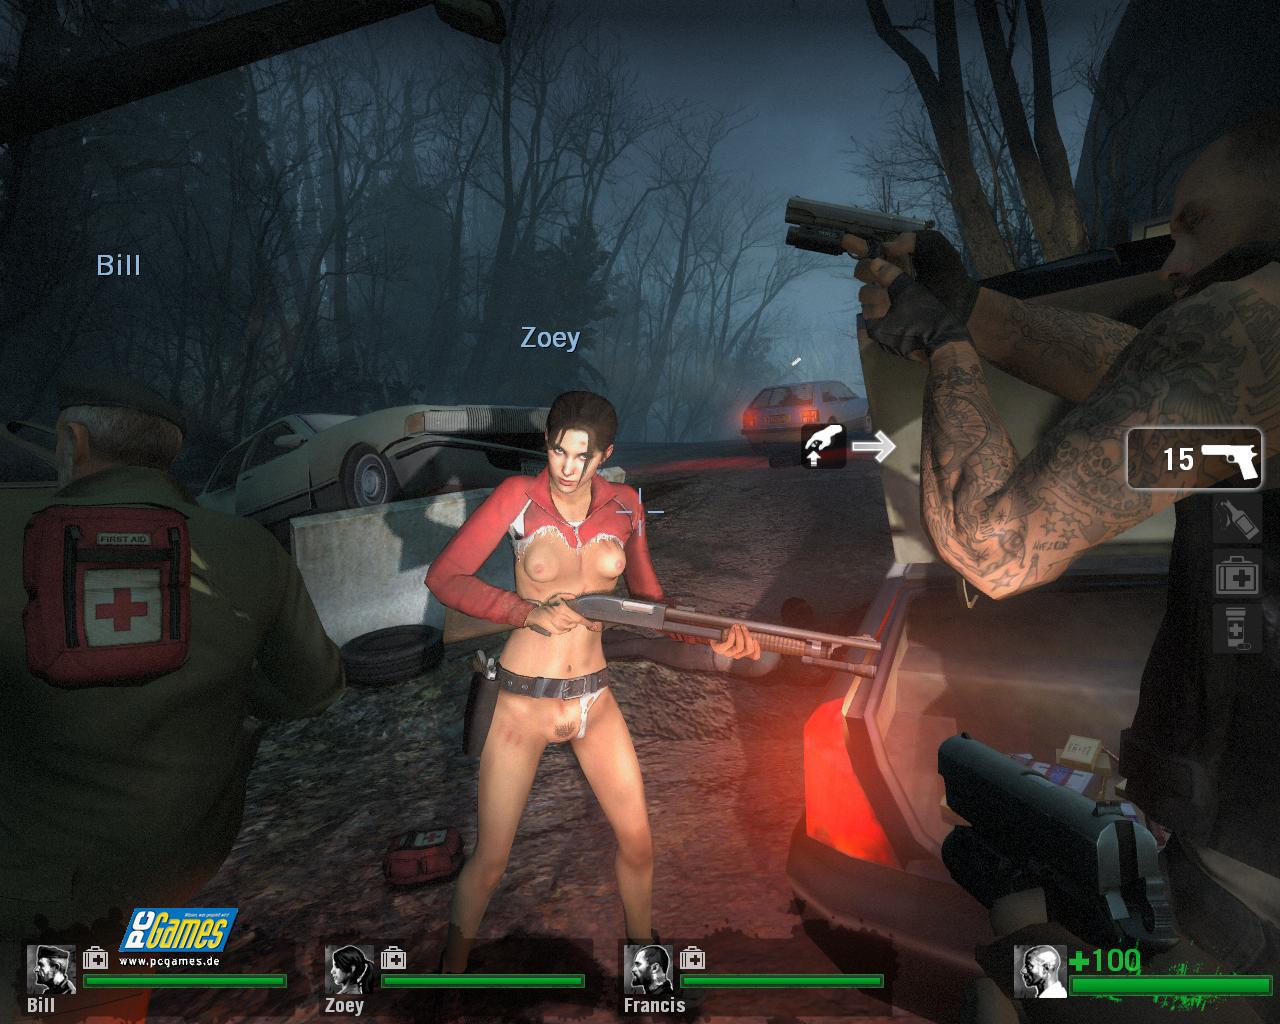 Naked zoey in l4d